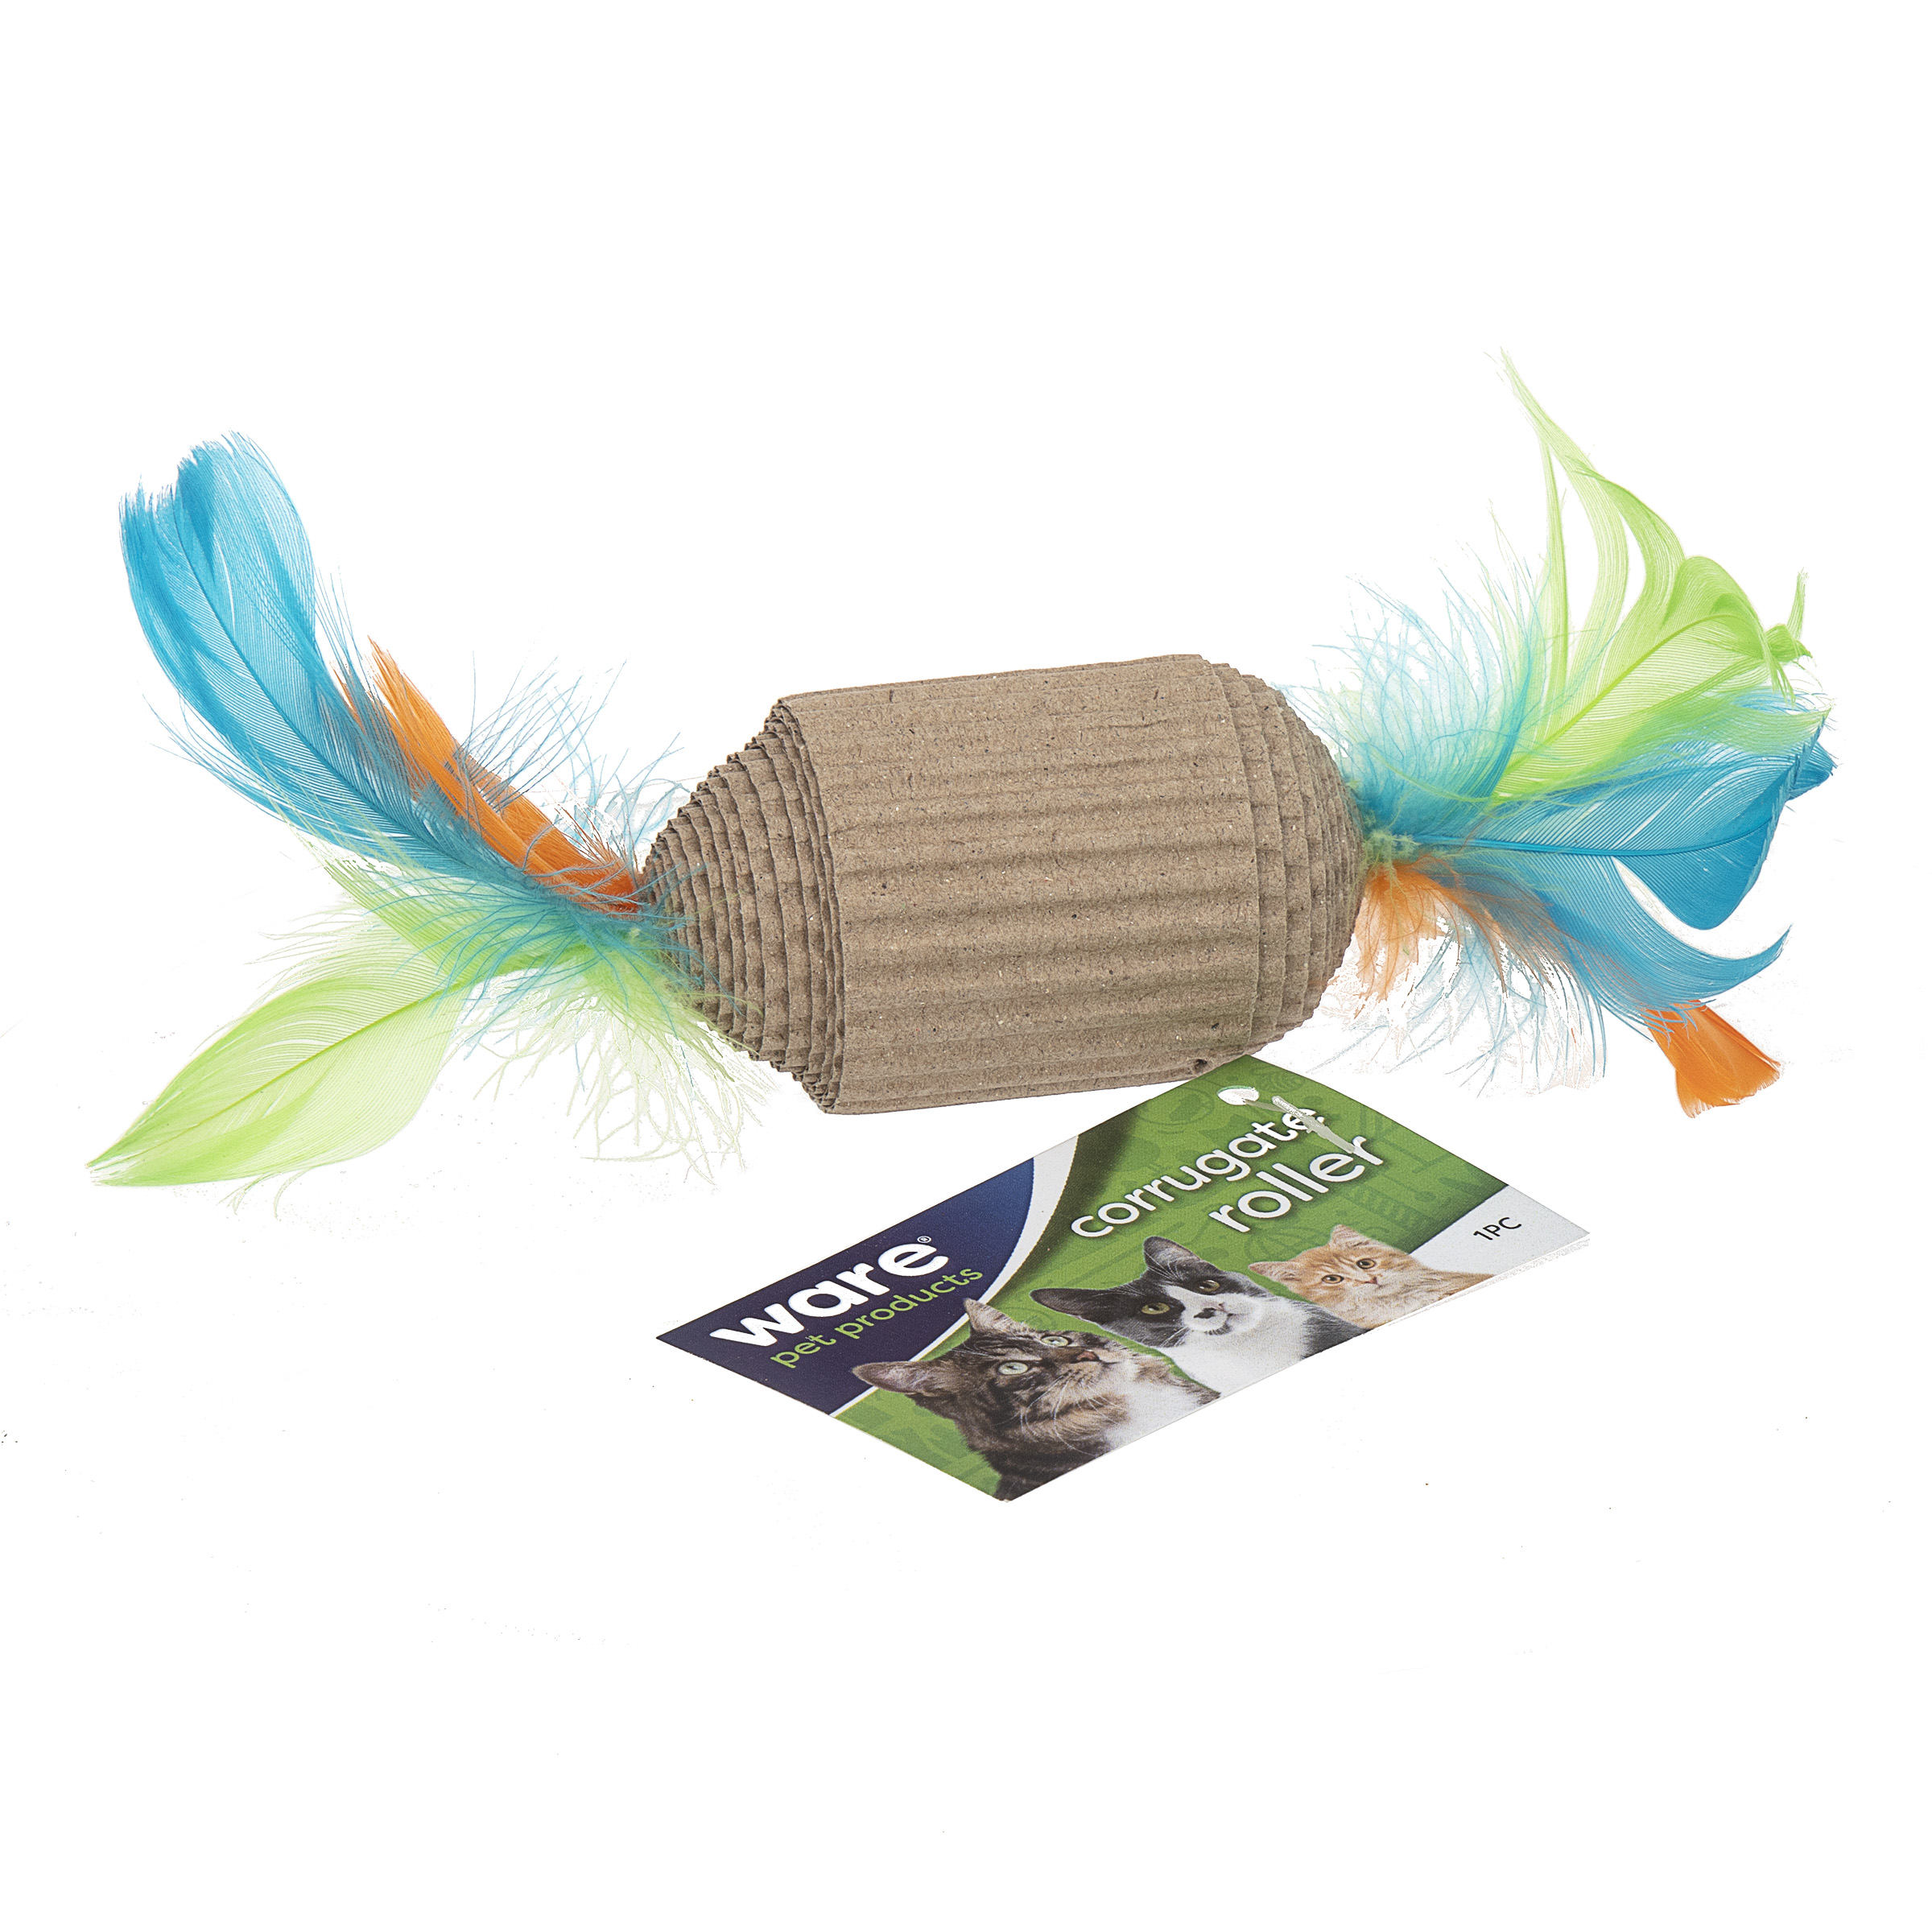 Corrugated Roller Eco Friendly Cat Toy